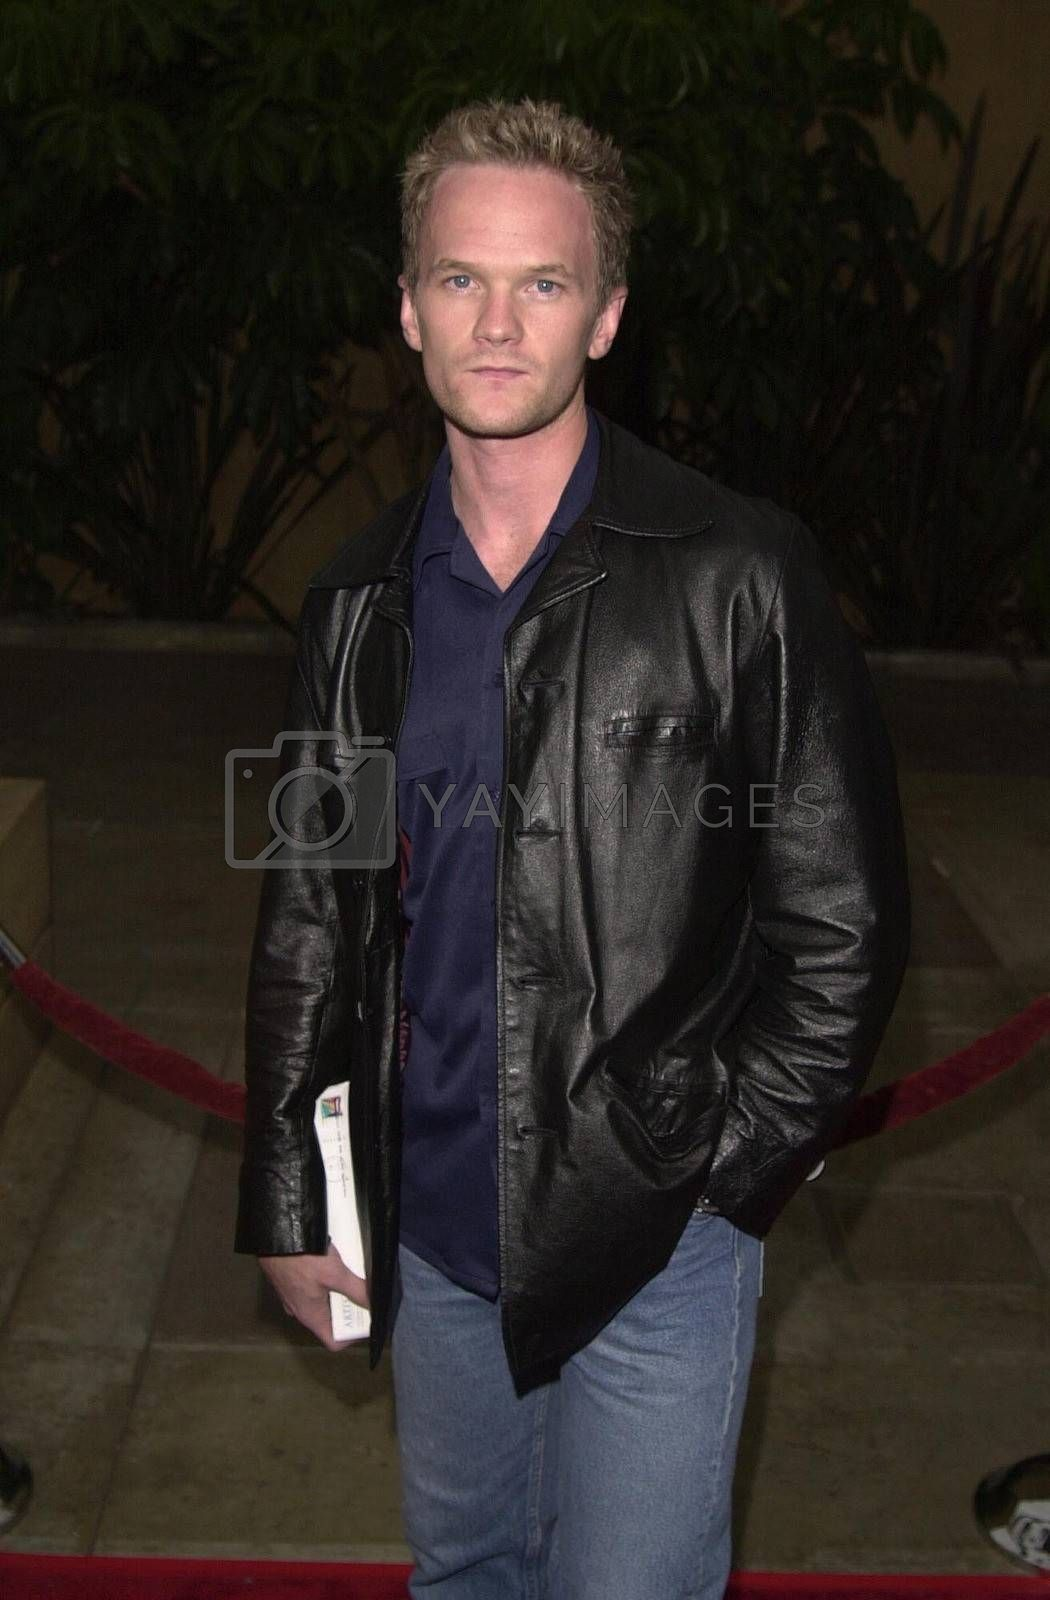 Neil Patrick Harris at the premiere of The Way Of The Gun in Hollywood. 08-29-00